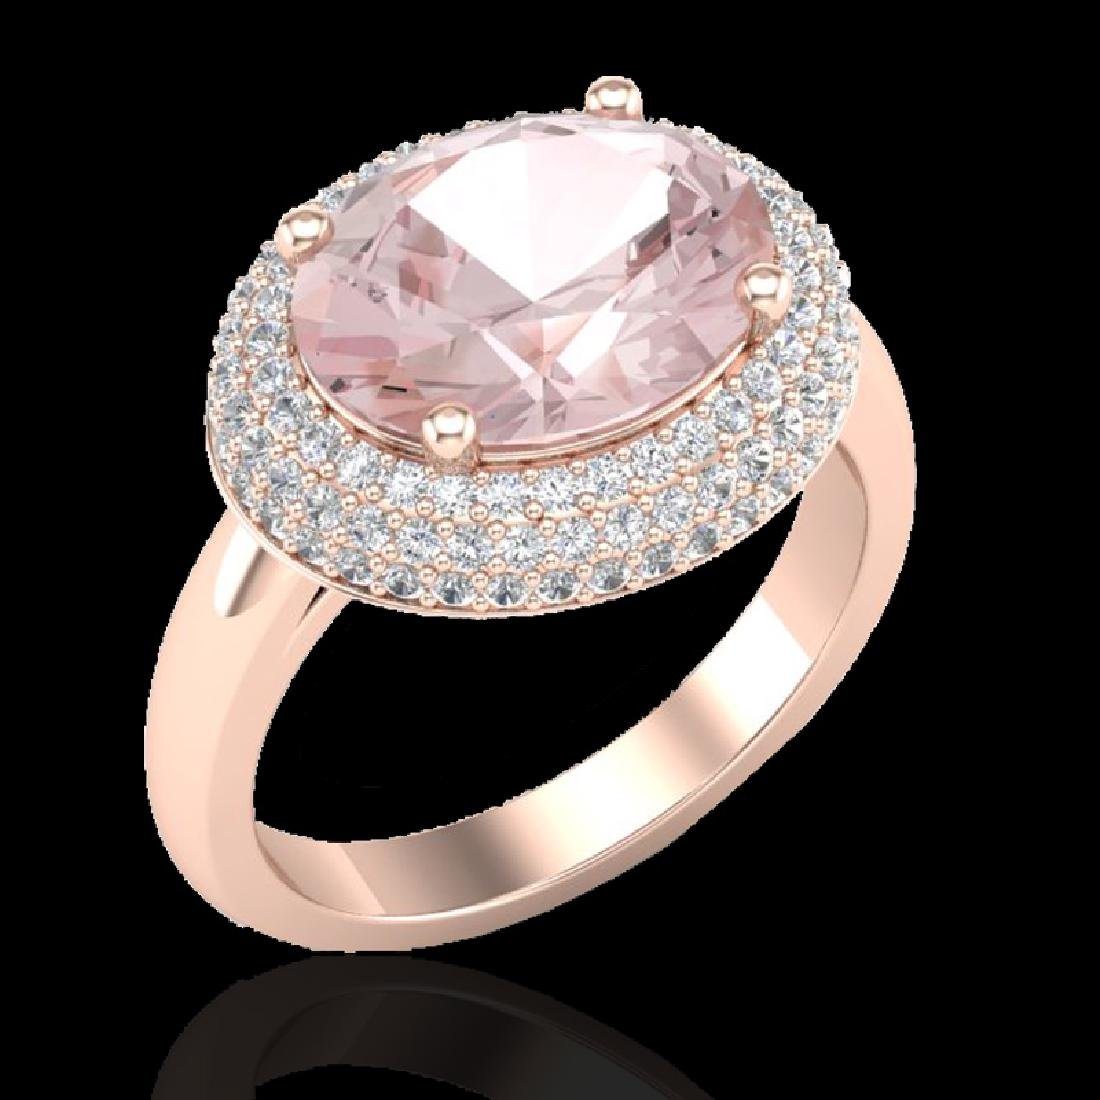 4.50 CTW Morganite & Micro Pave VS/SI Diamond Ring 14K